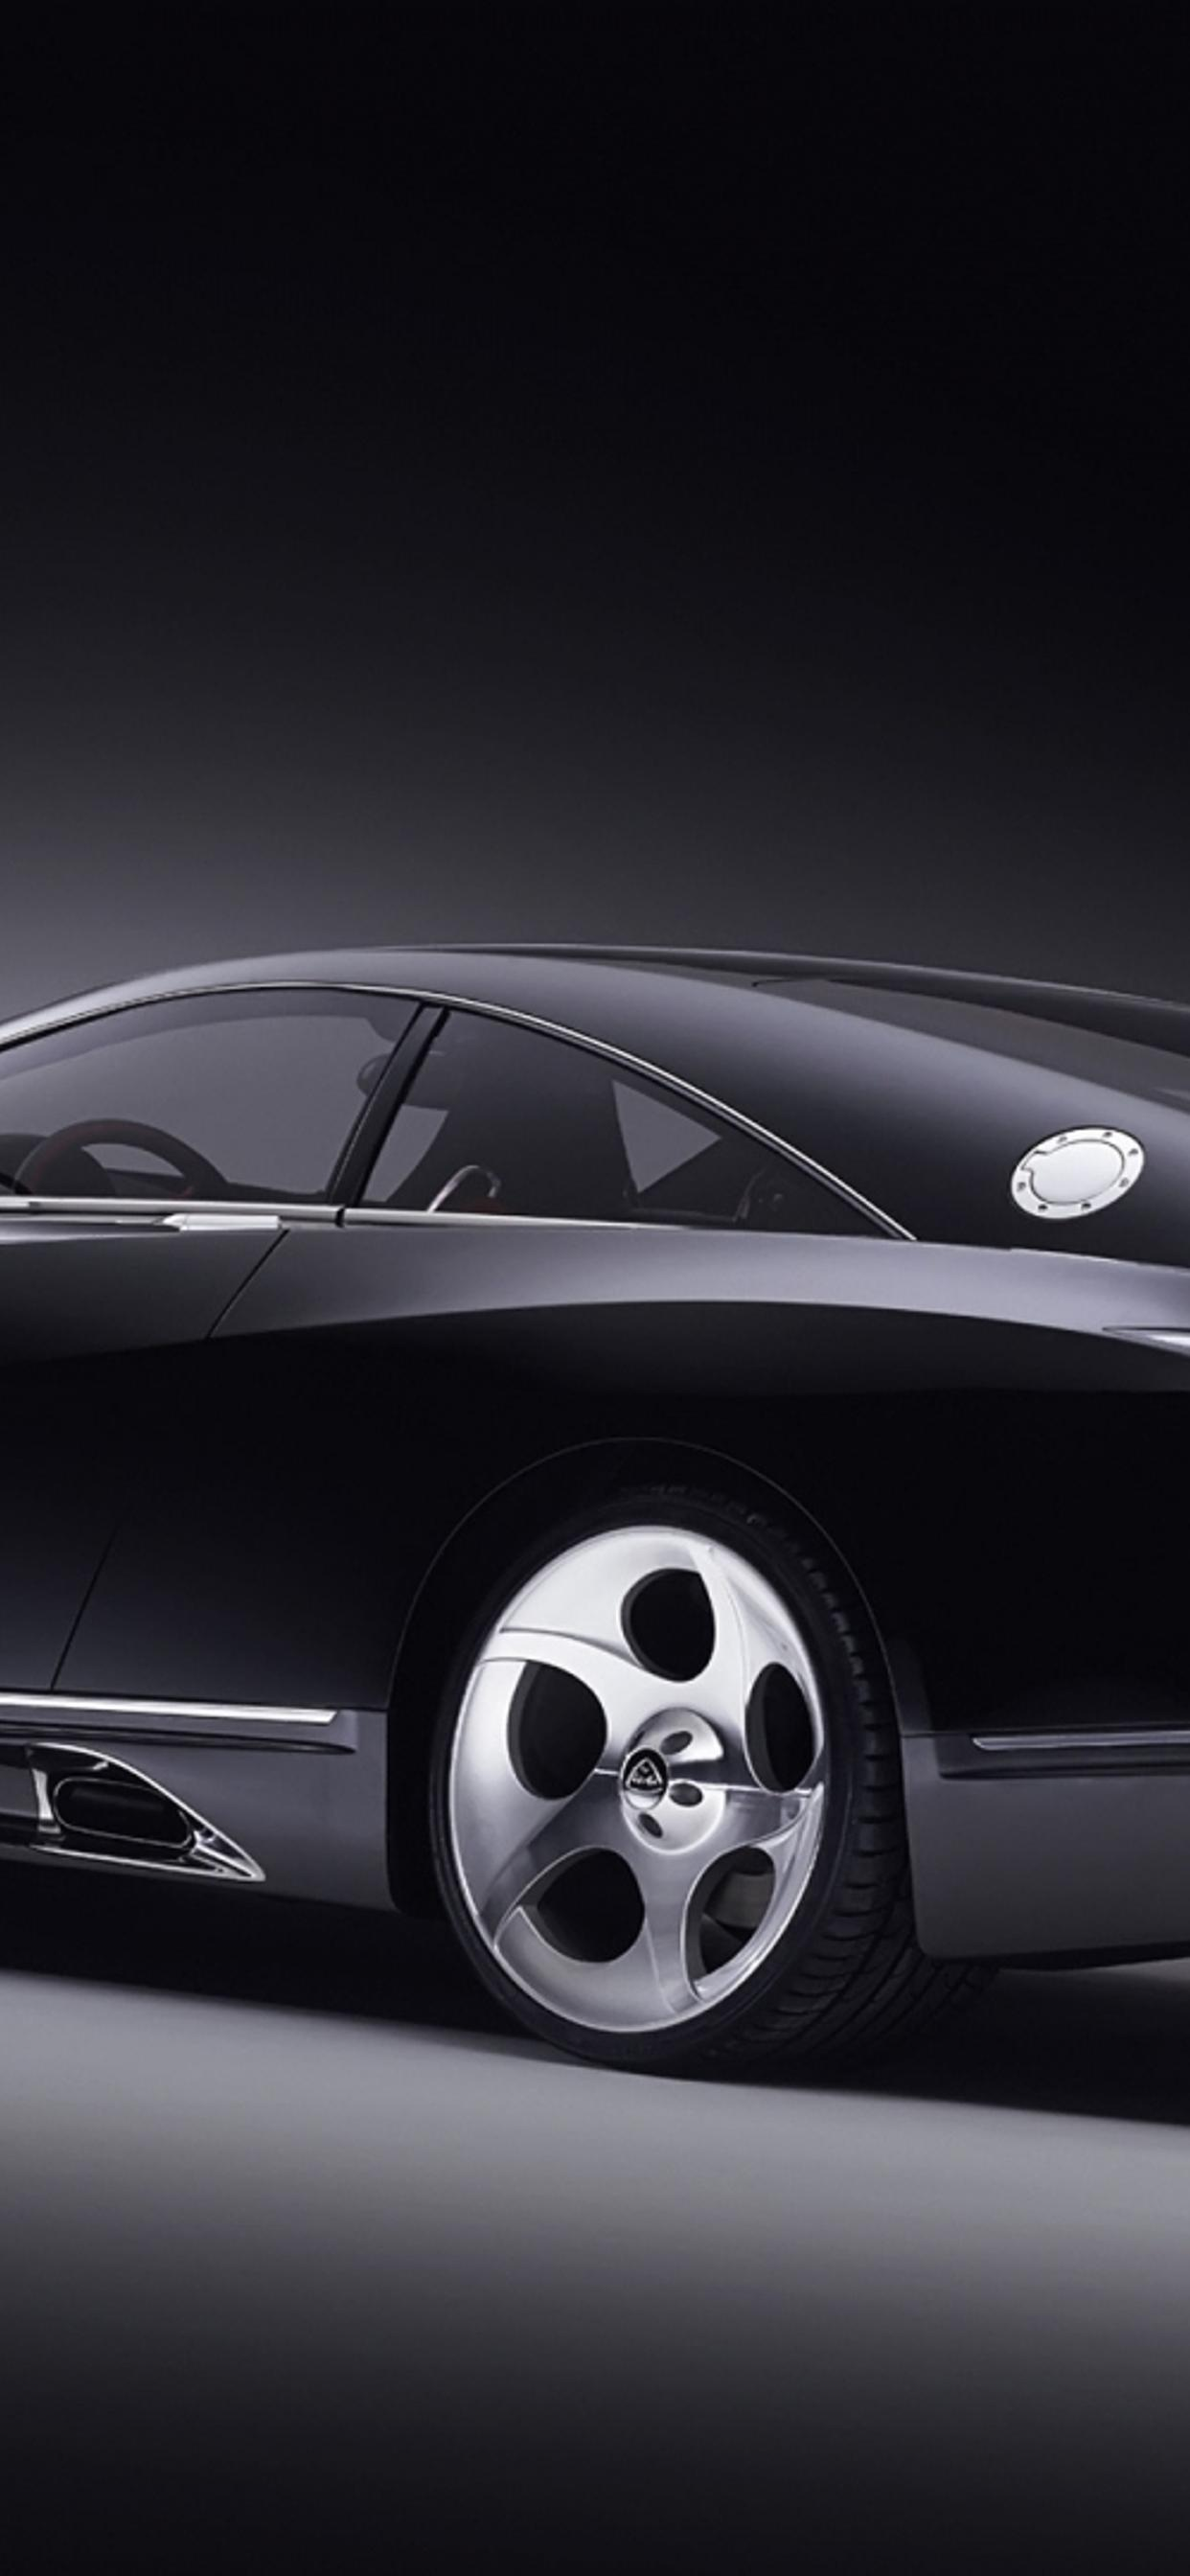 Black Maybach Exelero Car Wallpaper